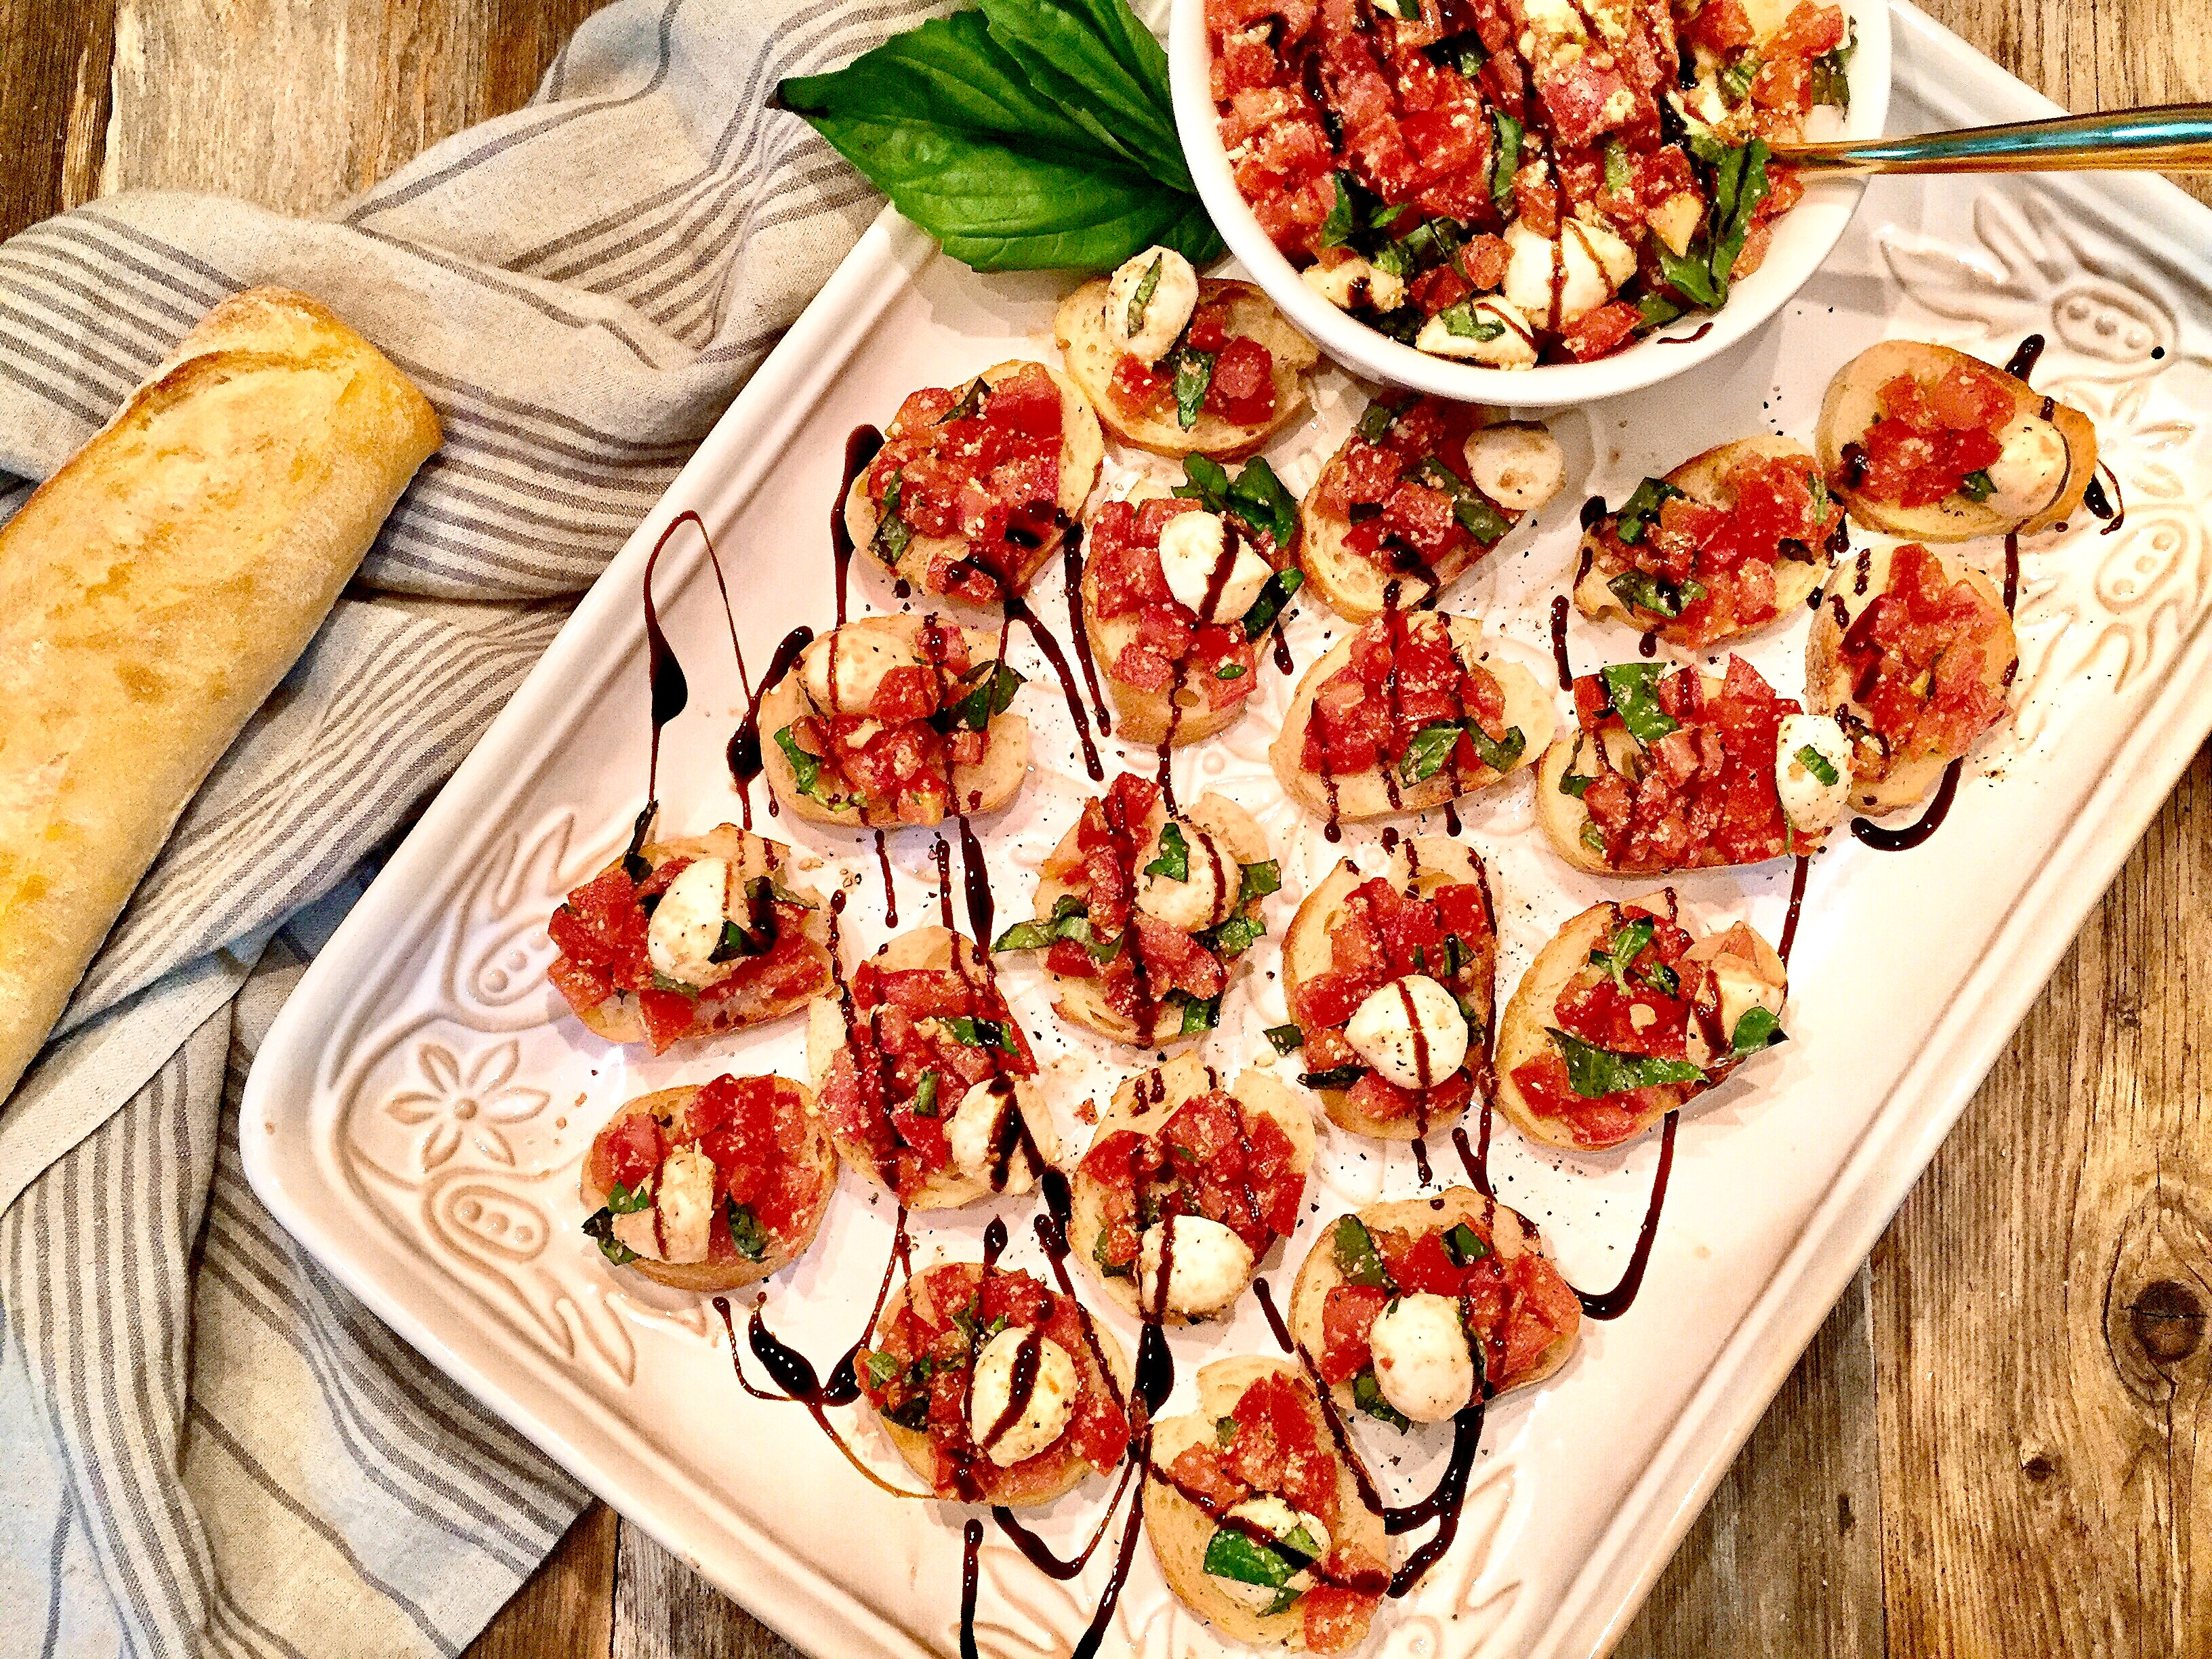 tomato bruschetta with mozzarella and basil a hint of wine. Black Bedroom Furniture Sets. Home Design Ideas